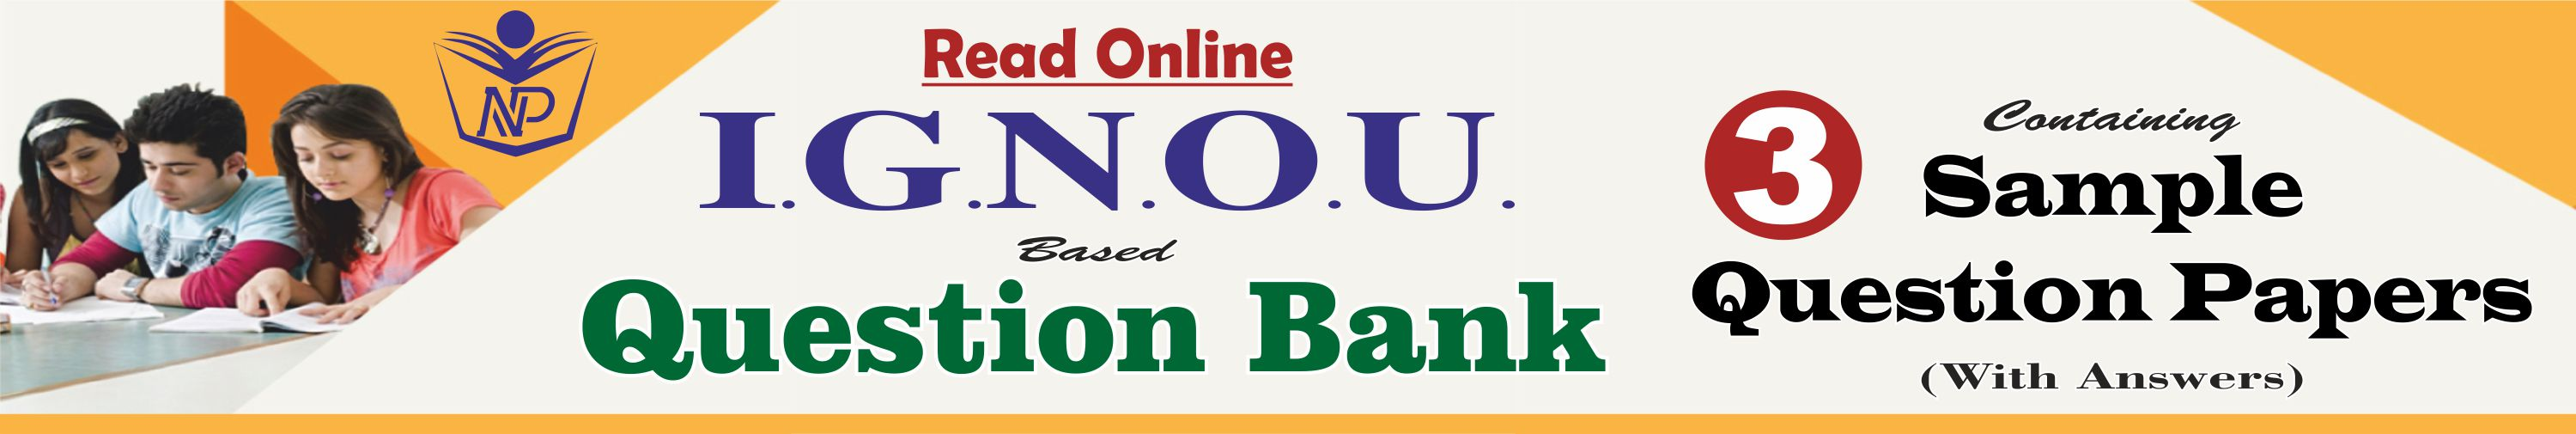 IGNOU header Banner